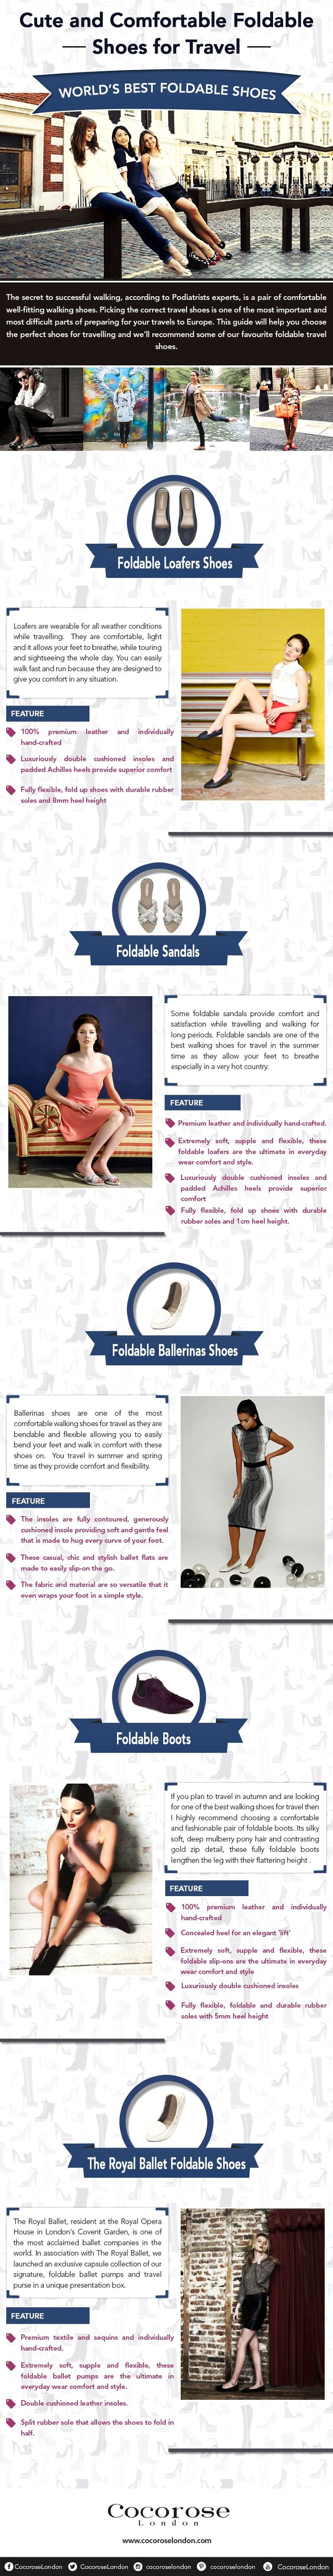 Cute And Comfortable Foldable Shoes For Travel [infographic]